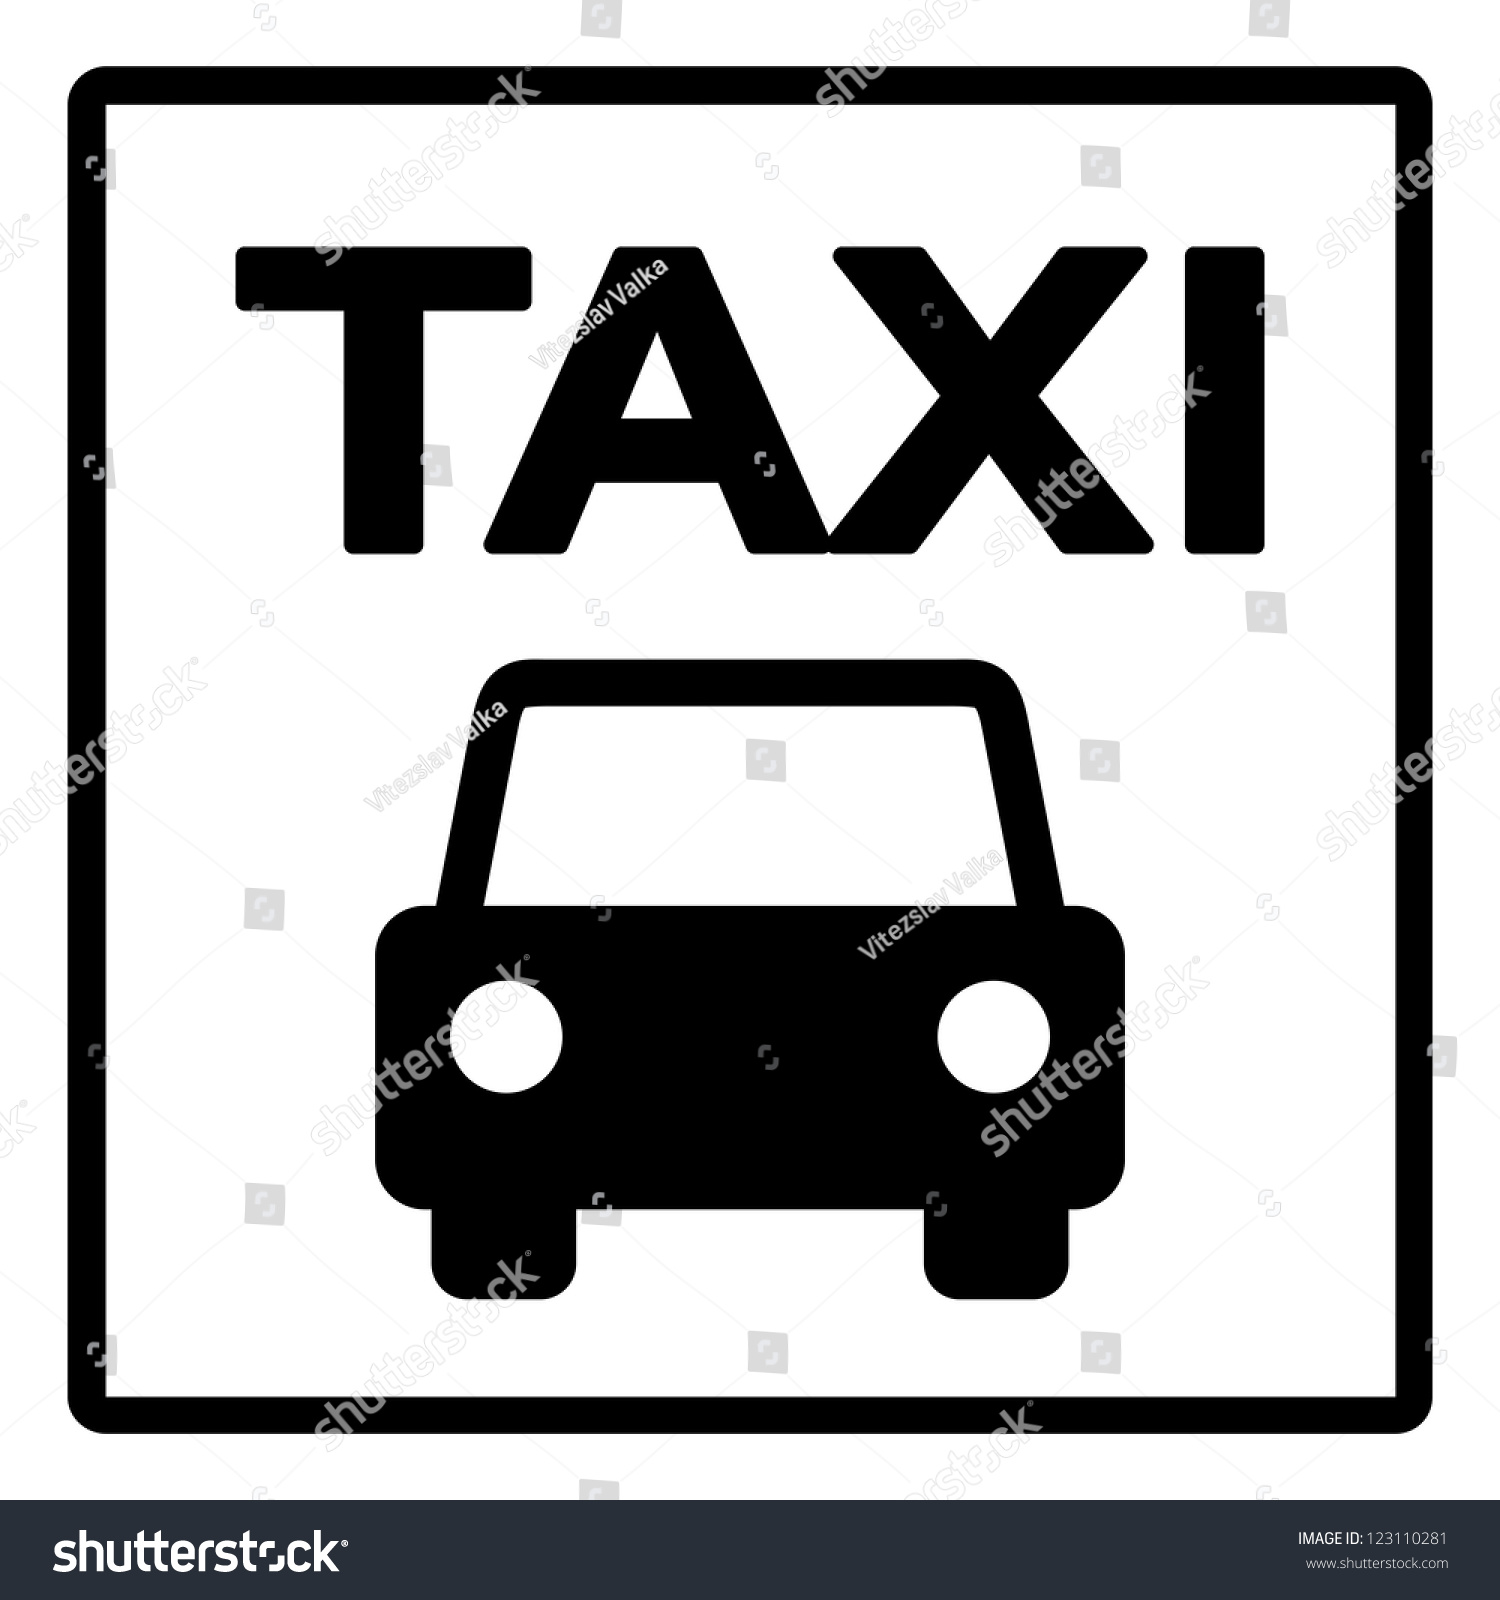 black and white taxi sign black silhouette of taxi cab. Black Bedroom Furniture Sets. Home Design Ideas